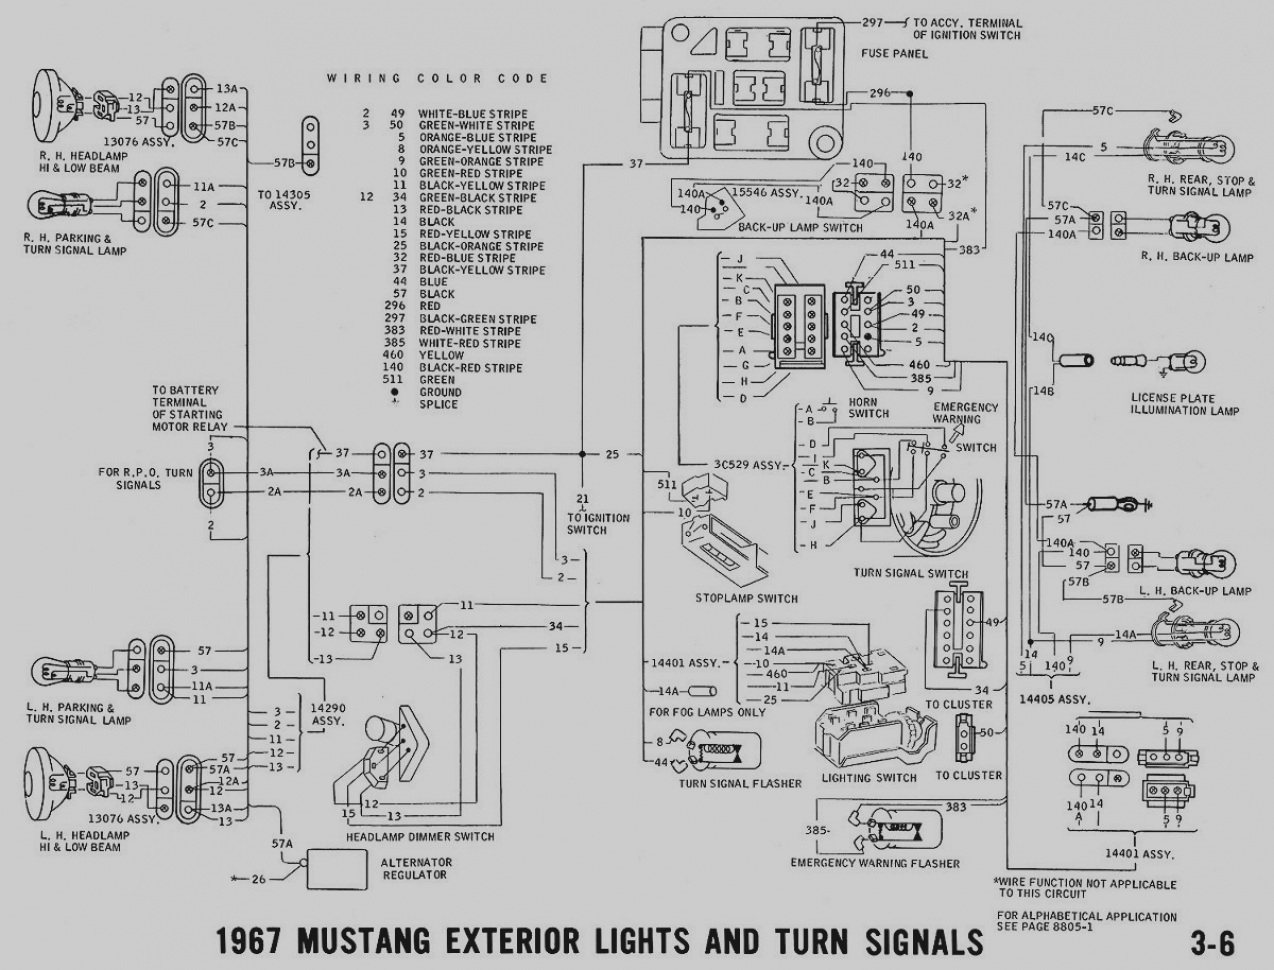 hight resolution of 1968 gto ignition switch wiring diagram data wiring diagrams u2022 95 firebird wiring diagram 69